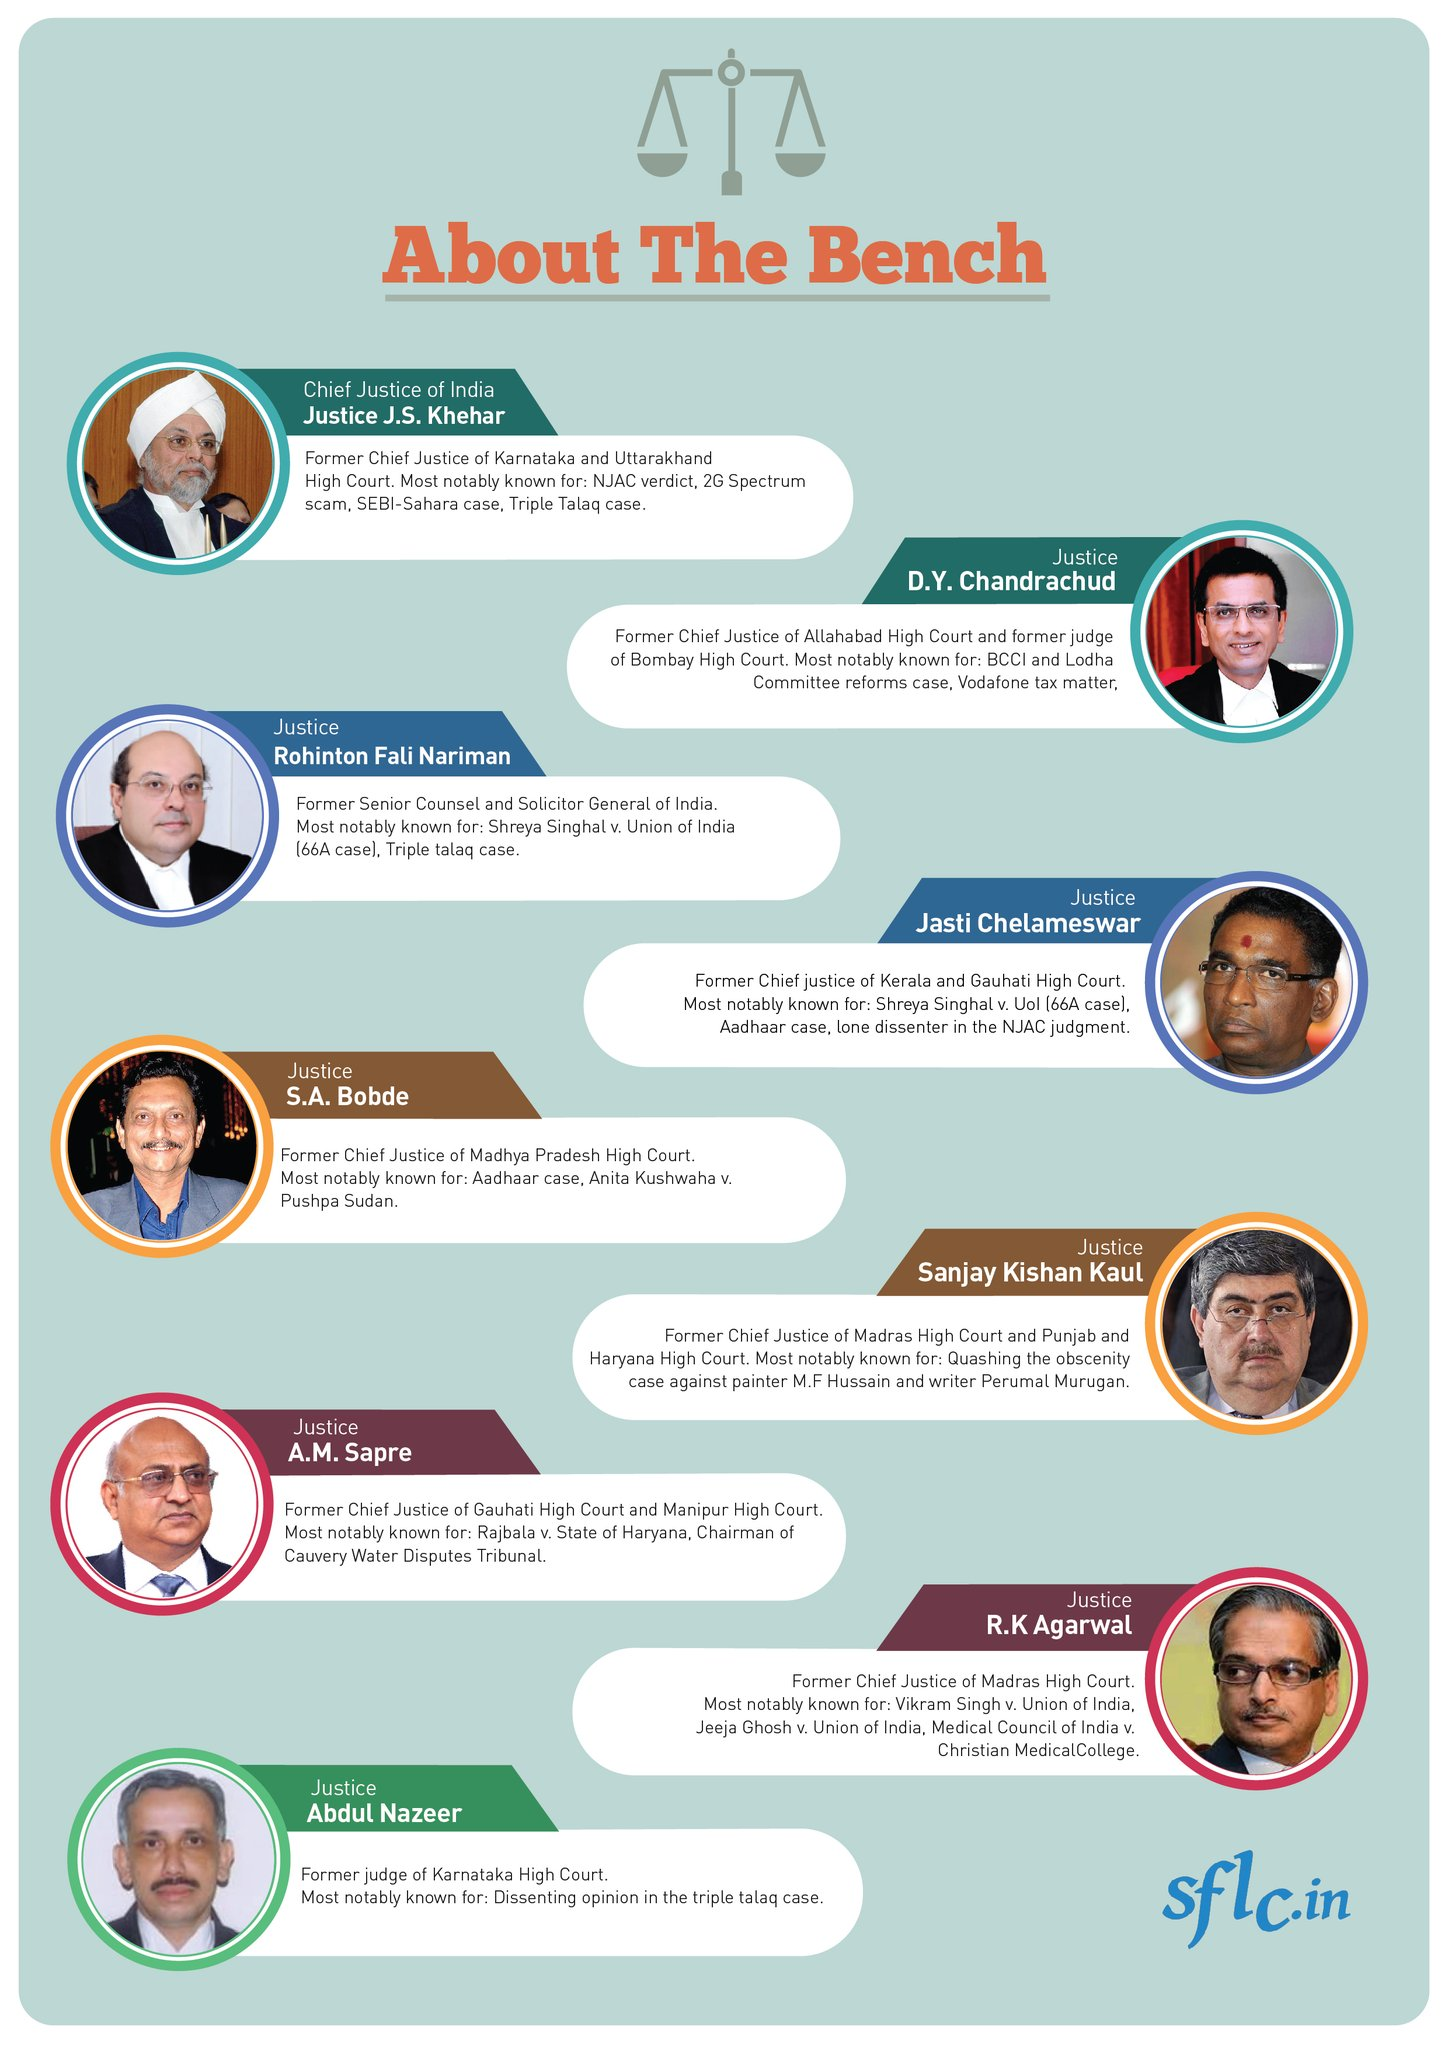 Profile of the judges. Image courtesy: sflc.in